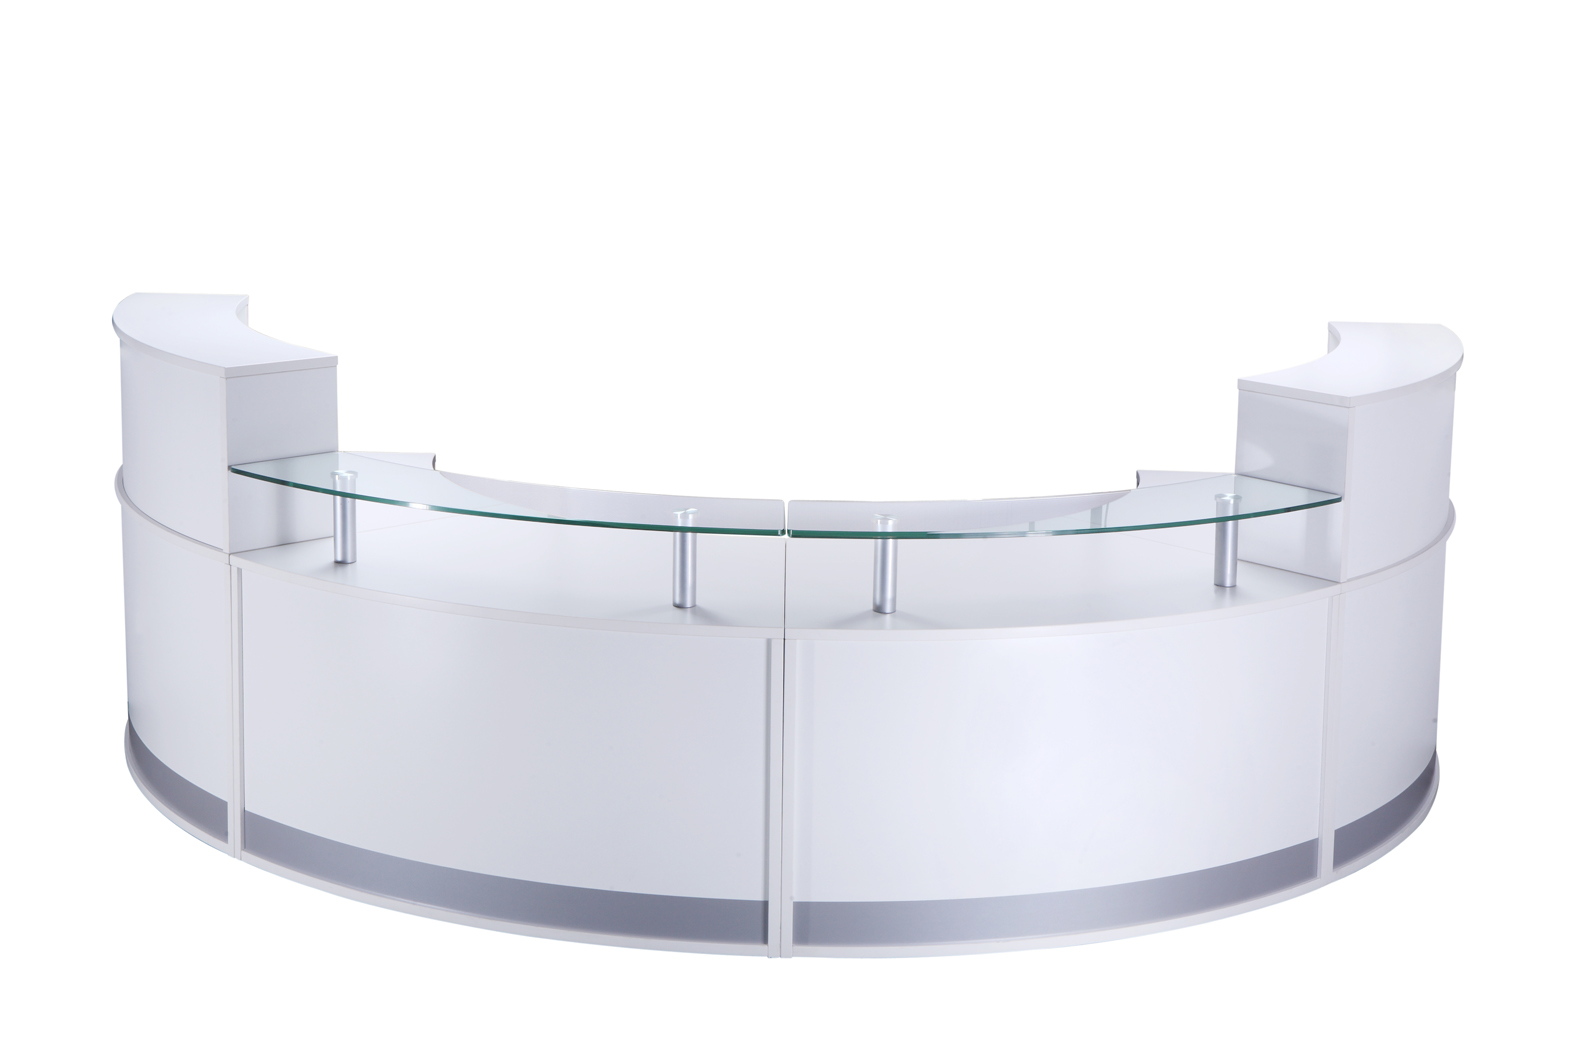 Furniture furniture seating storage operator seating - Curved Modular Reception Counter Somercotes Office